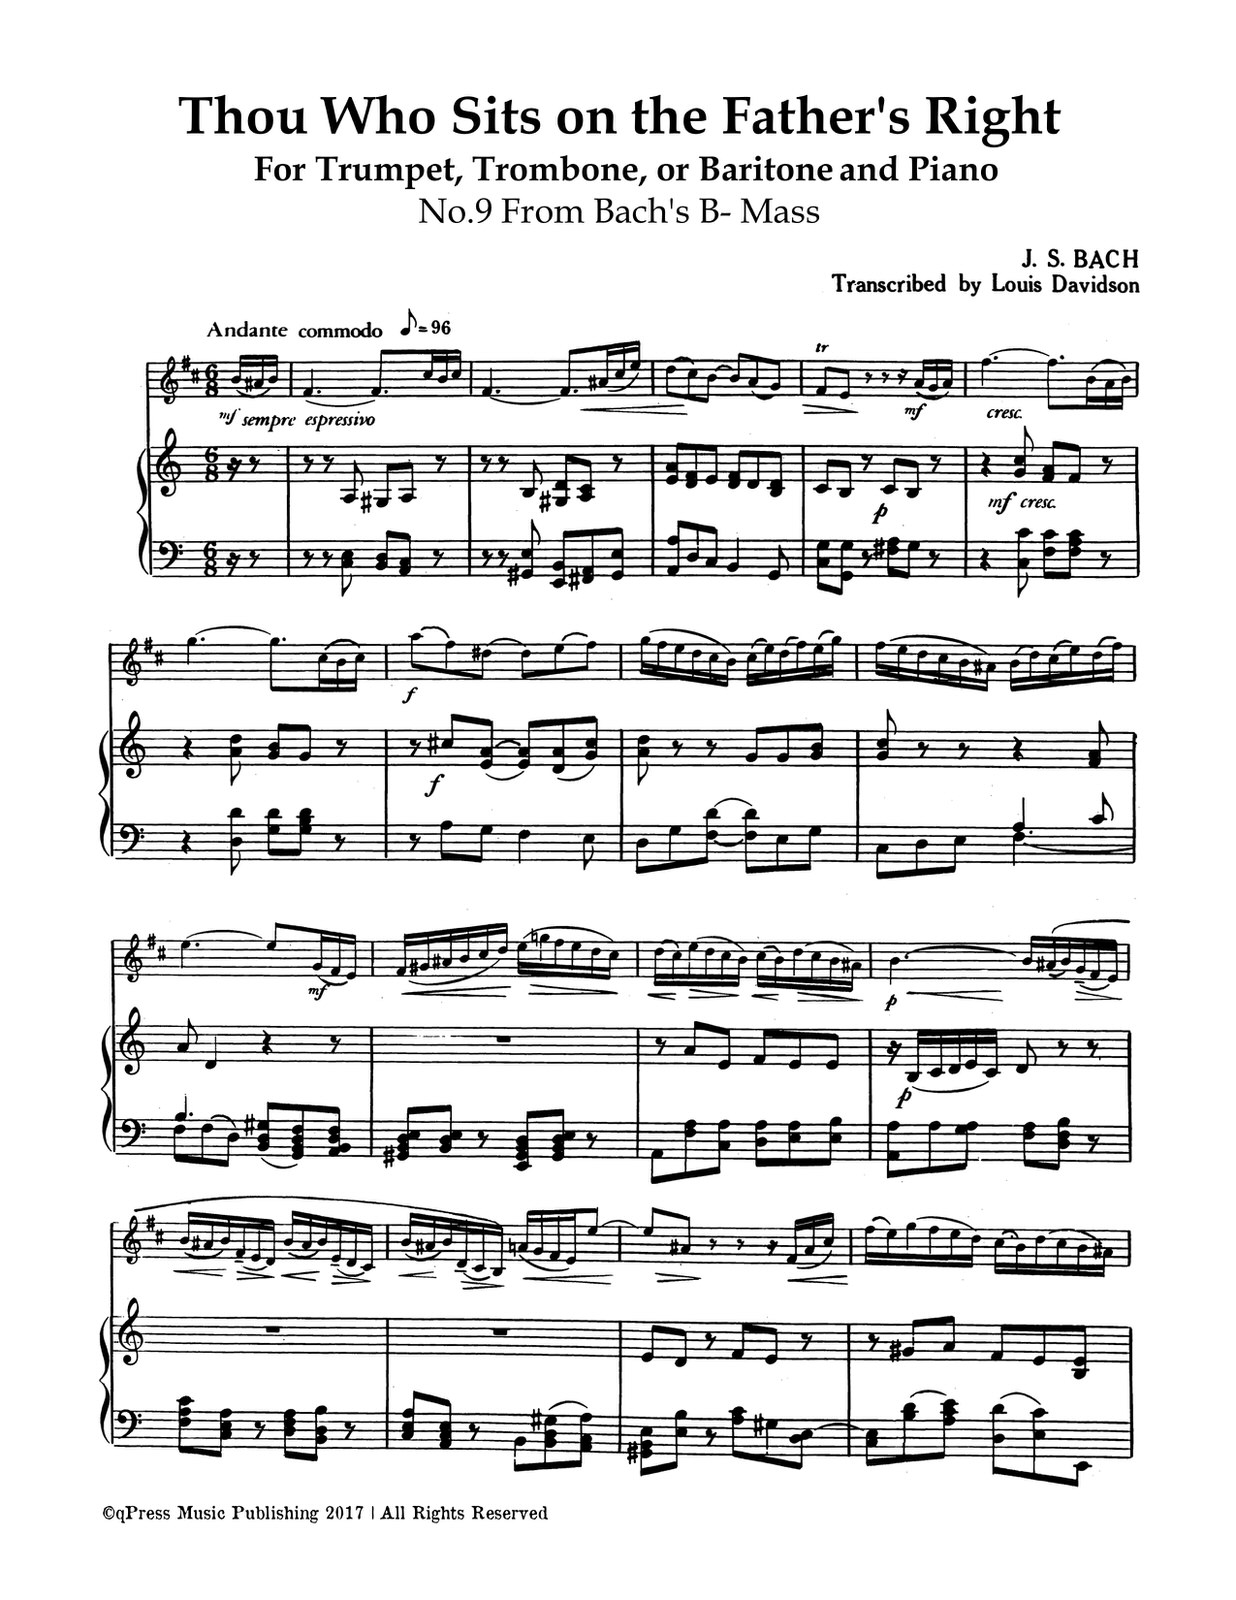 Bach, Davidson, Thou Who Sits to the Father's Right